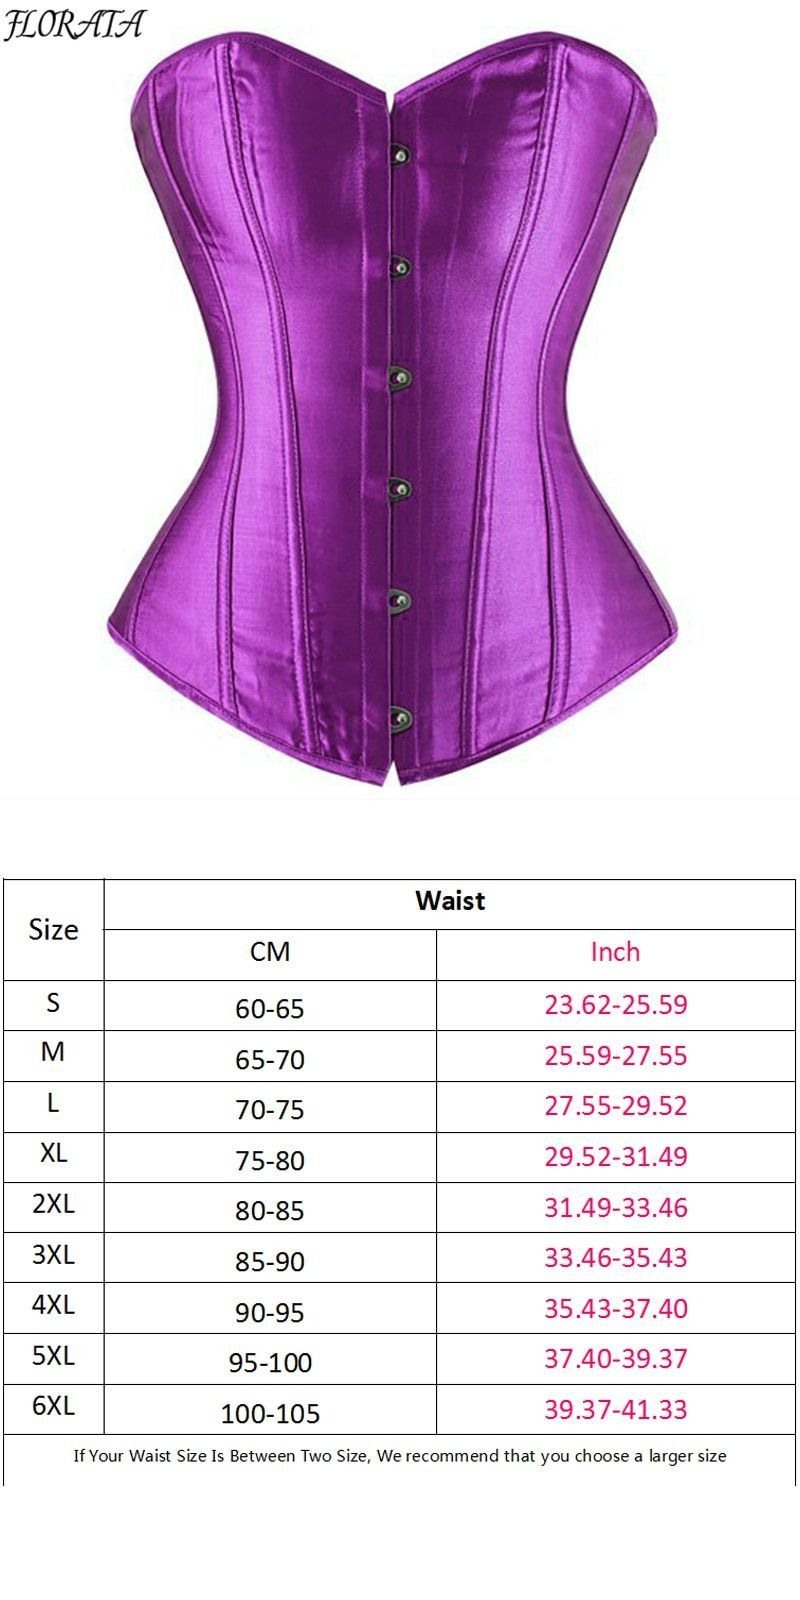 7441c44277 Good quality women sexy corset waist trainer satin black white overbust  boned lace up top bustier lingerie plus size  polyester